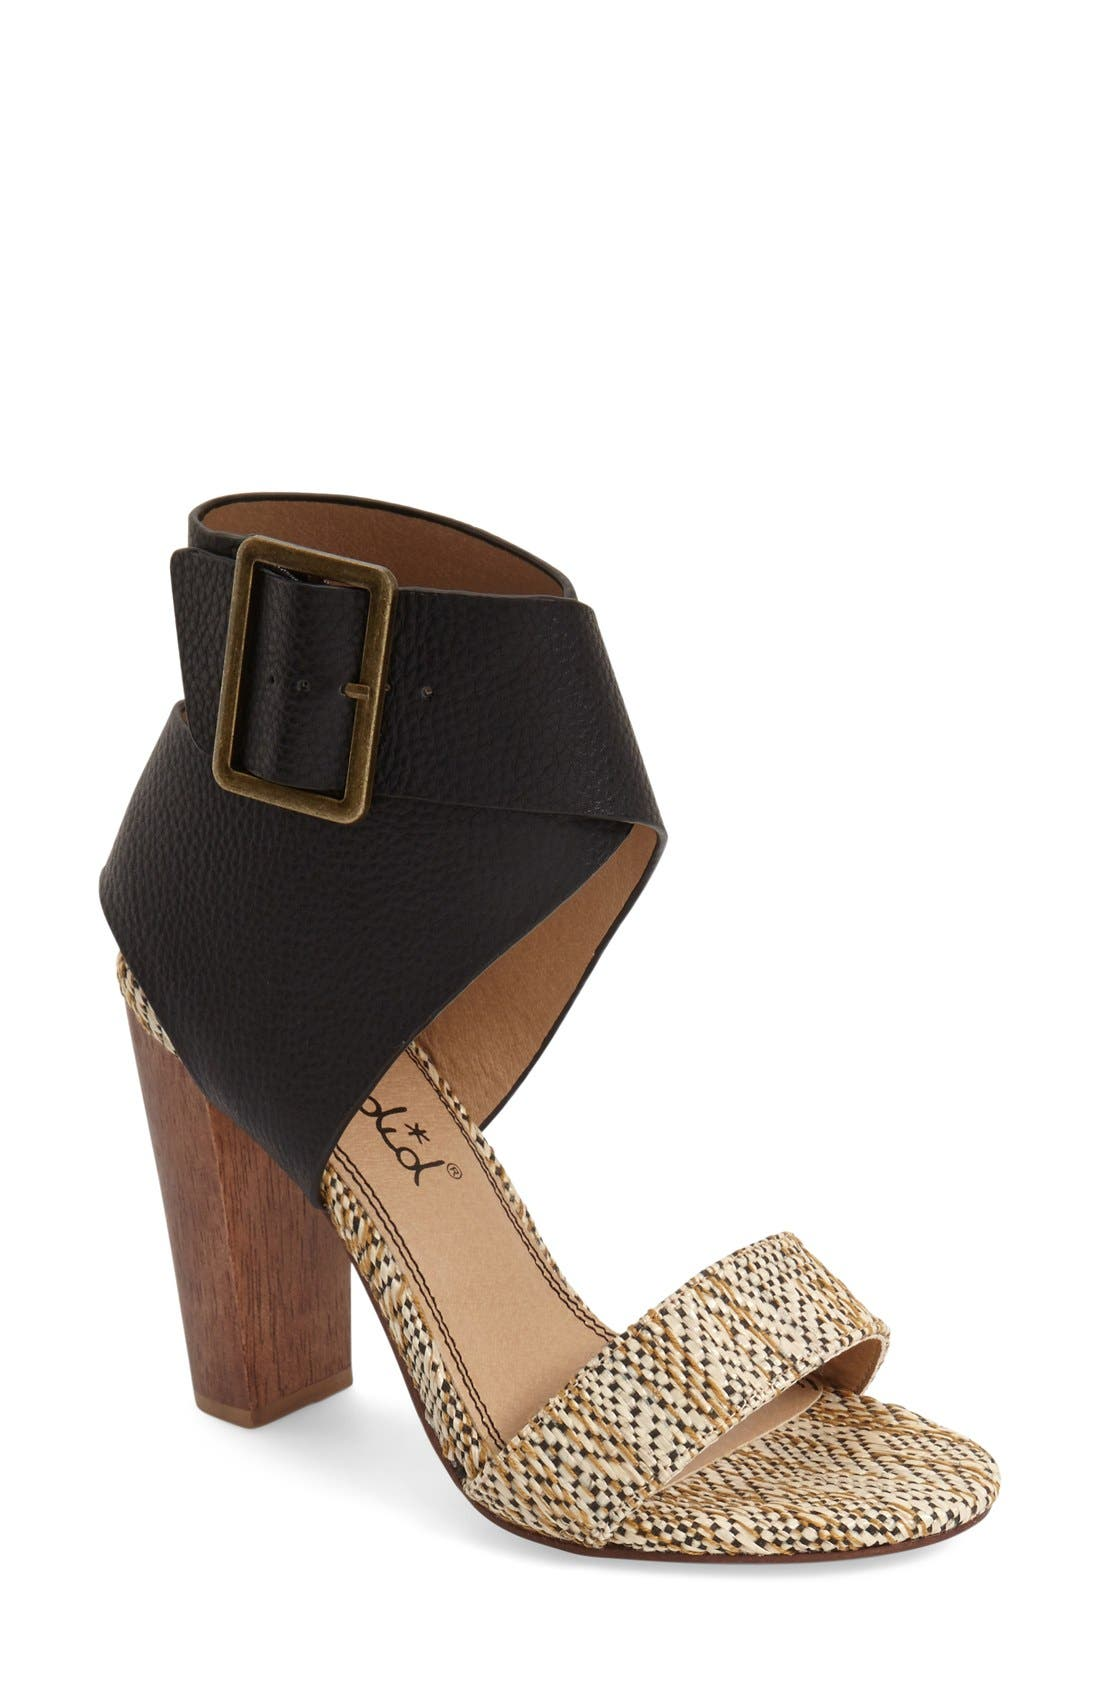 Alternate Image 1 Selected - Splendid 'Jayla' Ankle Cuff Sandal (Women)